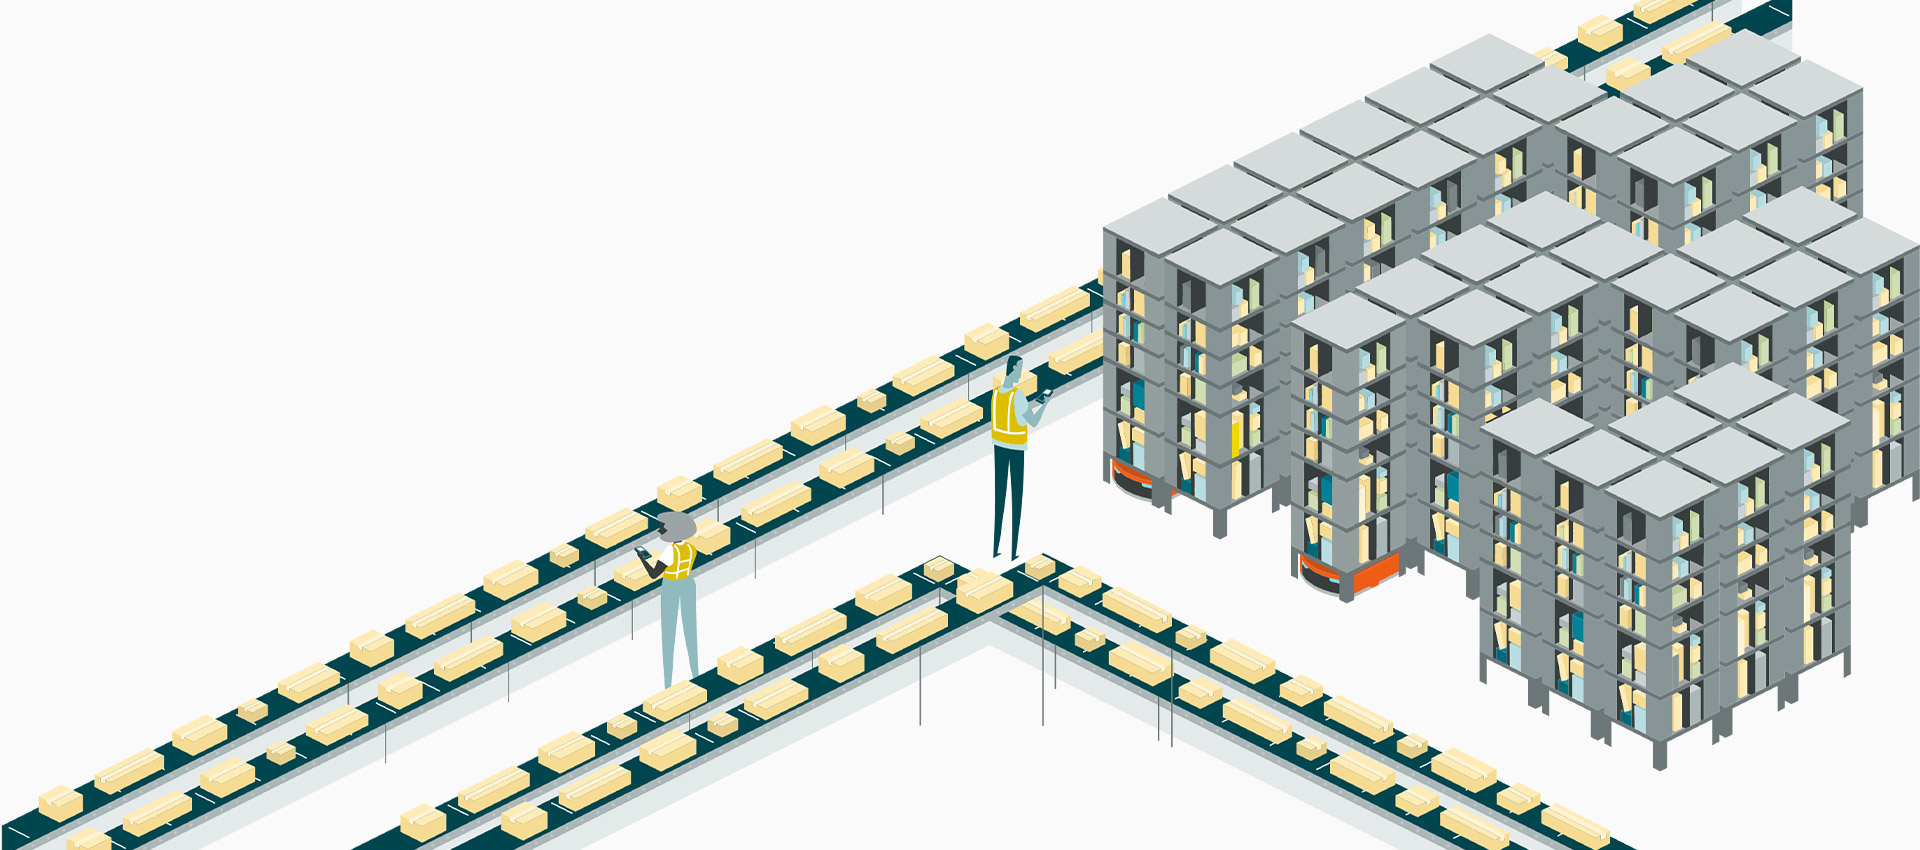 Fulfillment center operating with conveyer belts and shelves